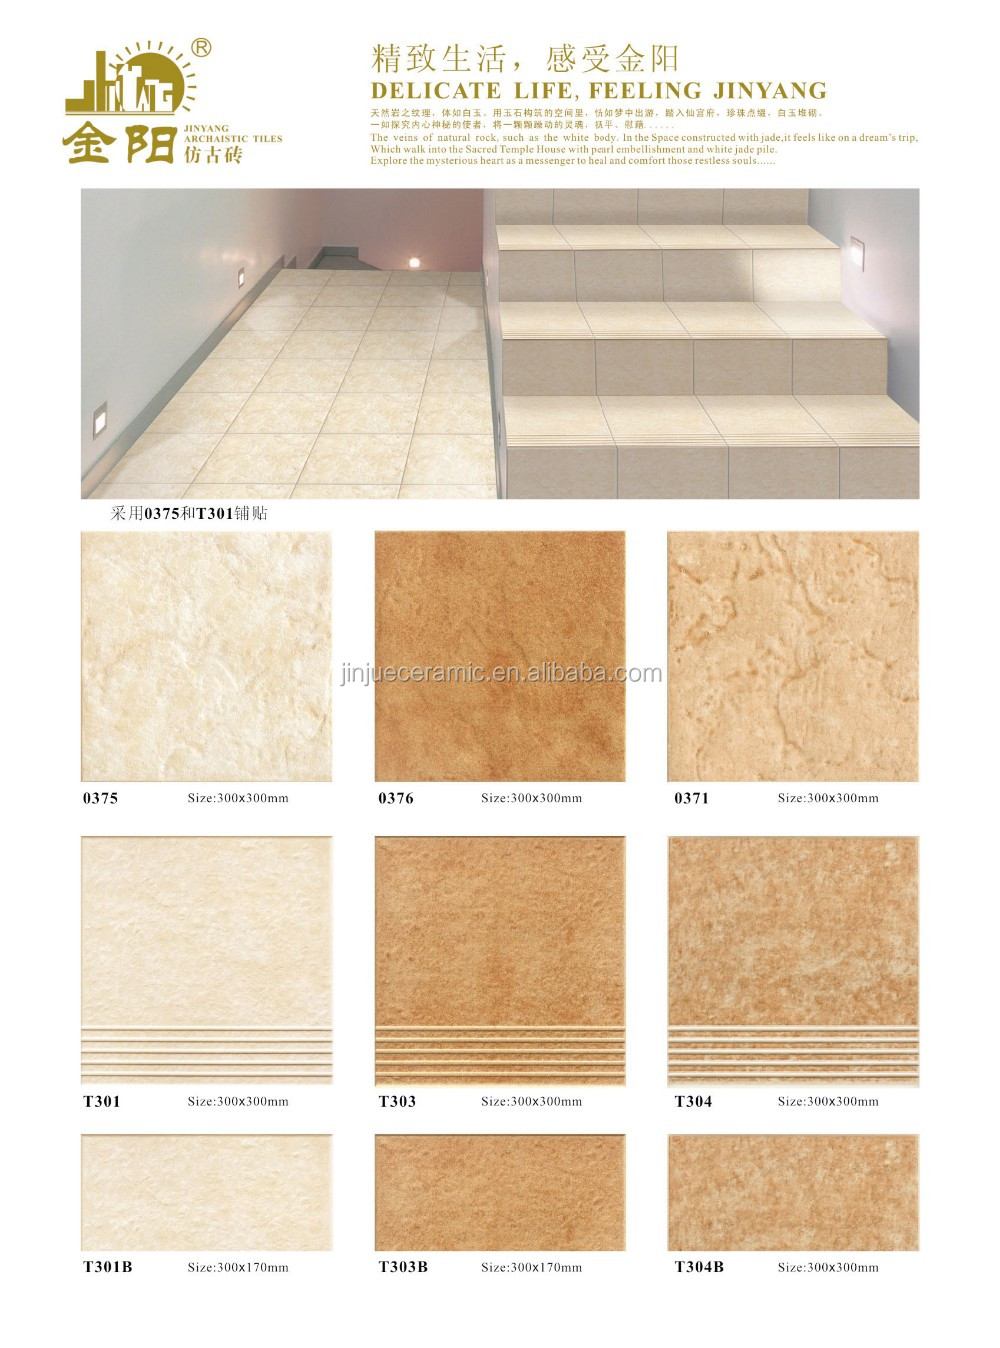 Guangdong manufacturer aaa grade purchase stand ceramic tile rose guangdong manufacturer aaa grade purchase stand ceramic tile rose color dailygadgetfo Images